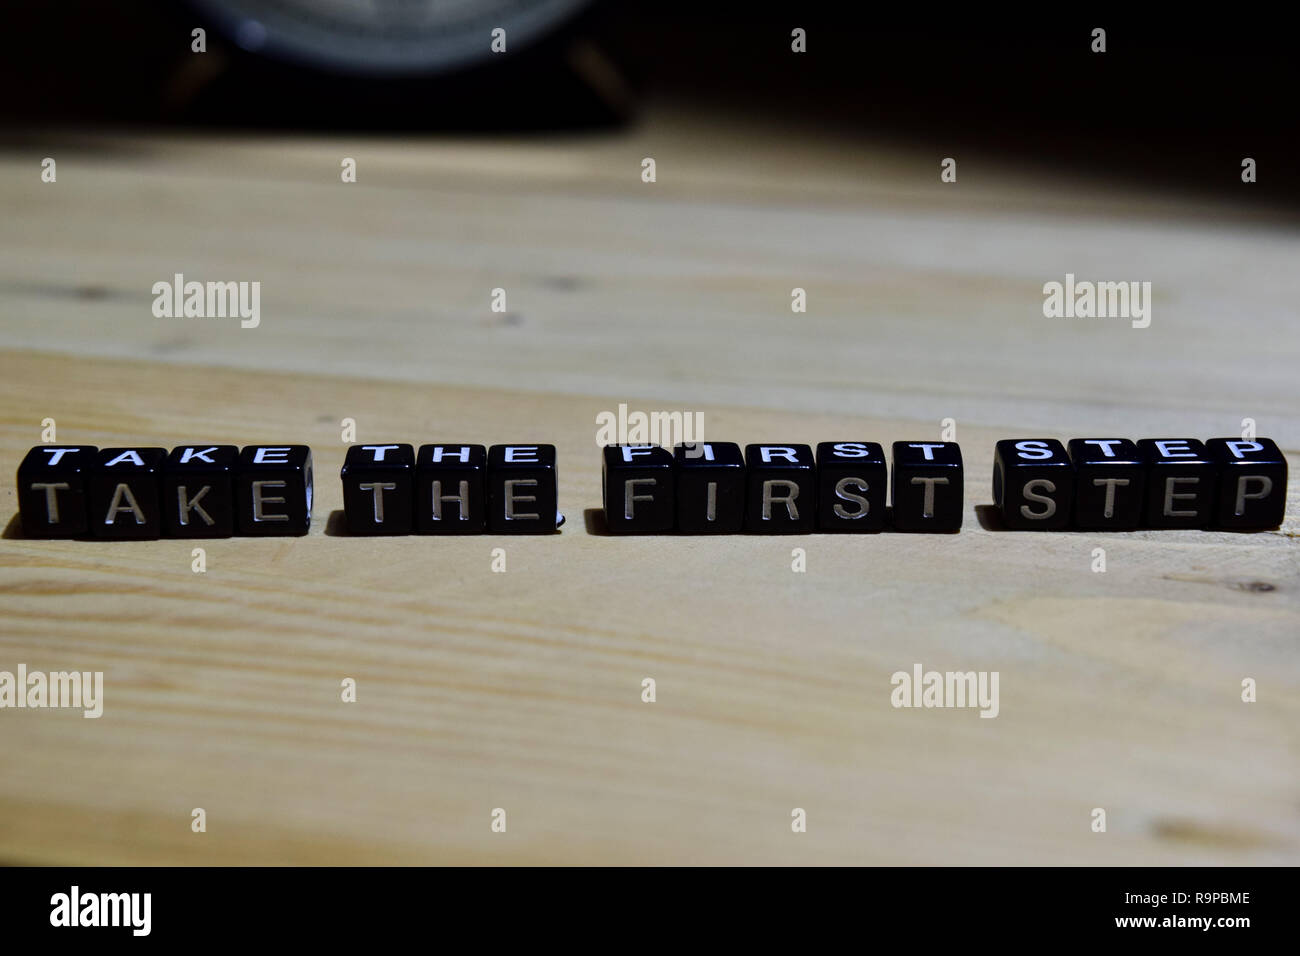 Take the first step written on wooden blocks. Education and business concept on wooden background - Stock Image